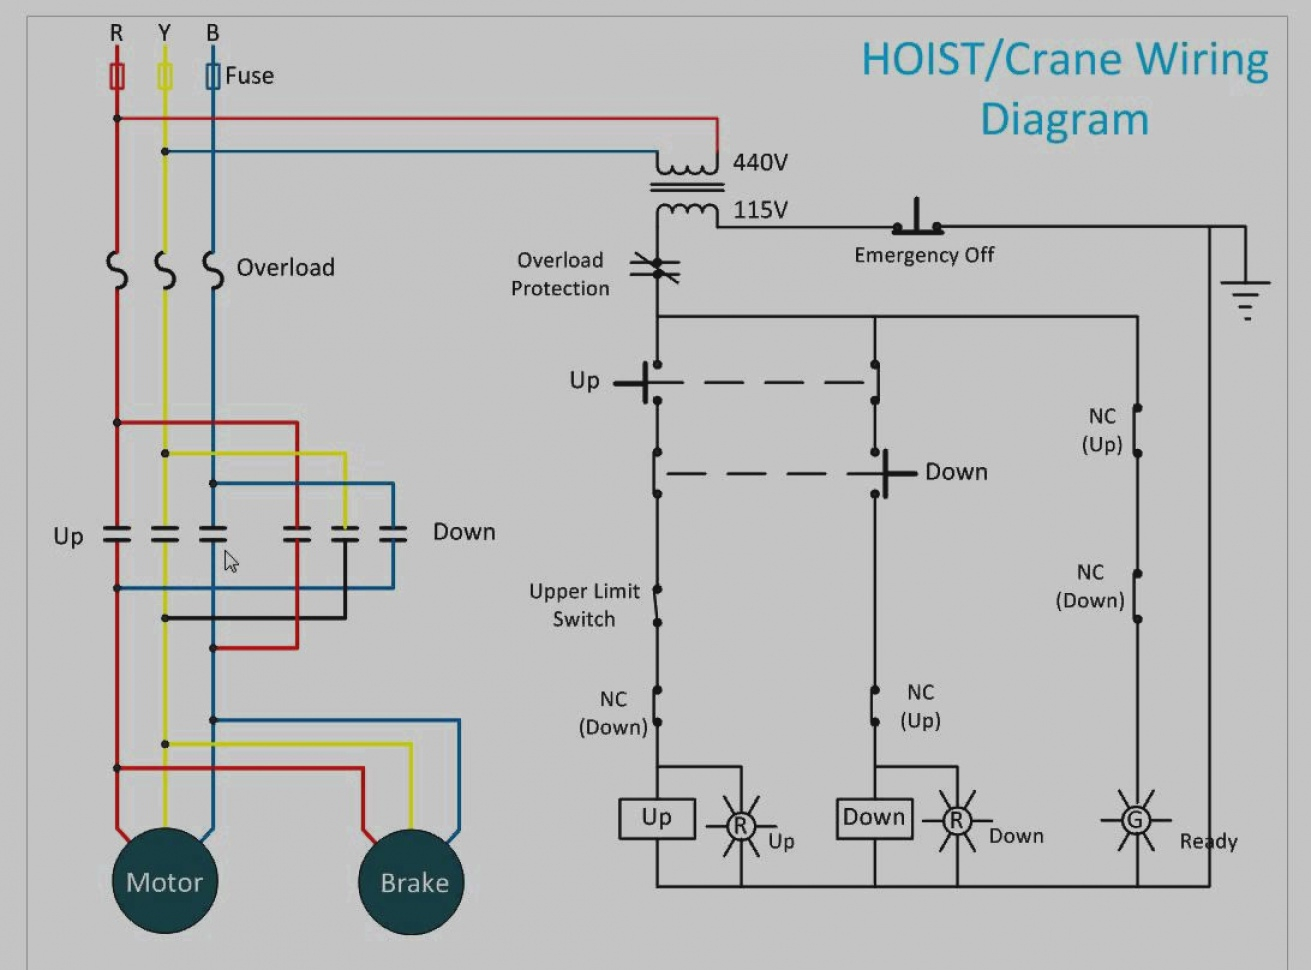 hight resolution of cm hoist switches diagram wiring diagram advance cm hoist switches diagram